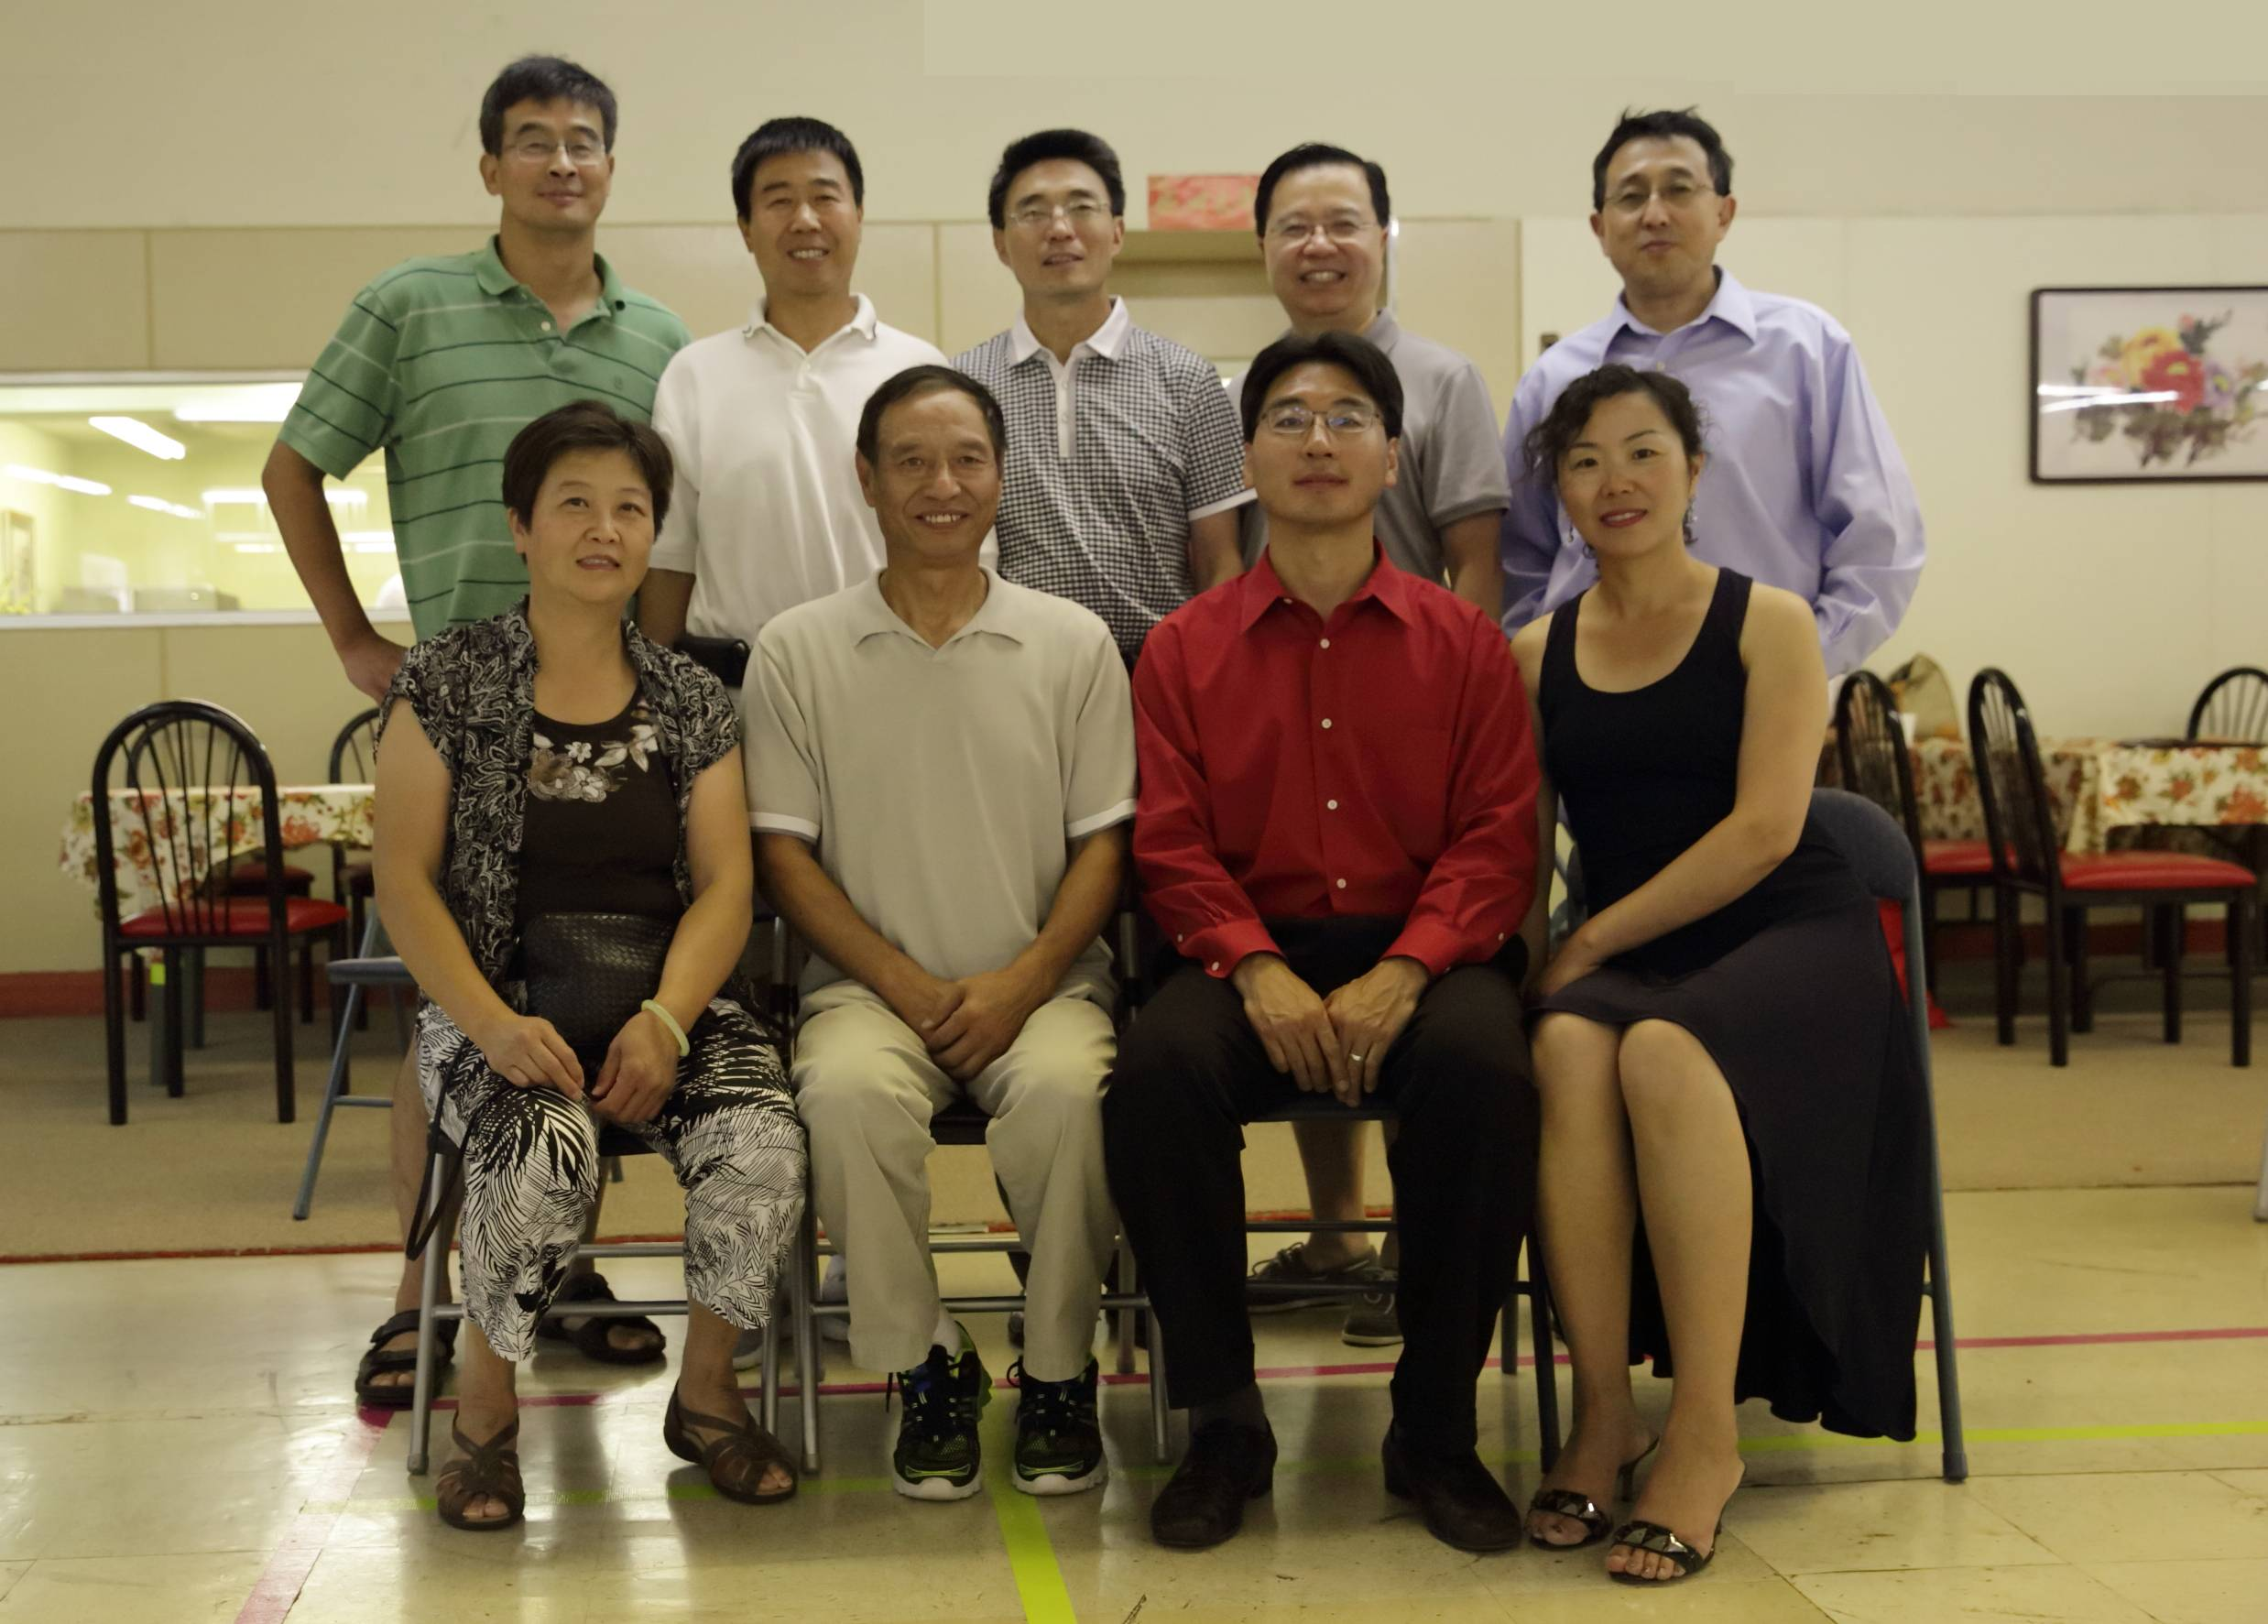 At the opening of the Epic Healthy Living Education Center in Mundelein, front row: Zhiping Lu, Jianhua Guo, Xiangdong Xu and Yaya Liu; back row: Xian Chen, James Wang, Ron Li, Denis Tian, Jinhe Li.